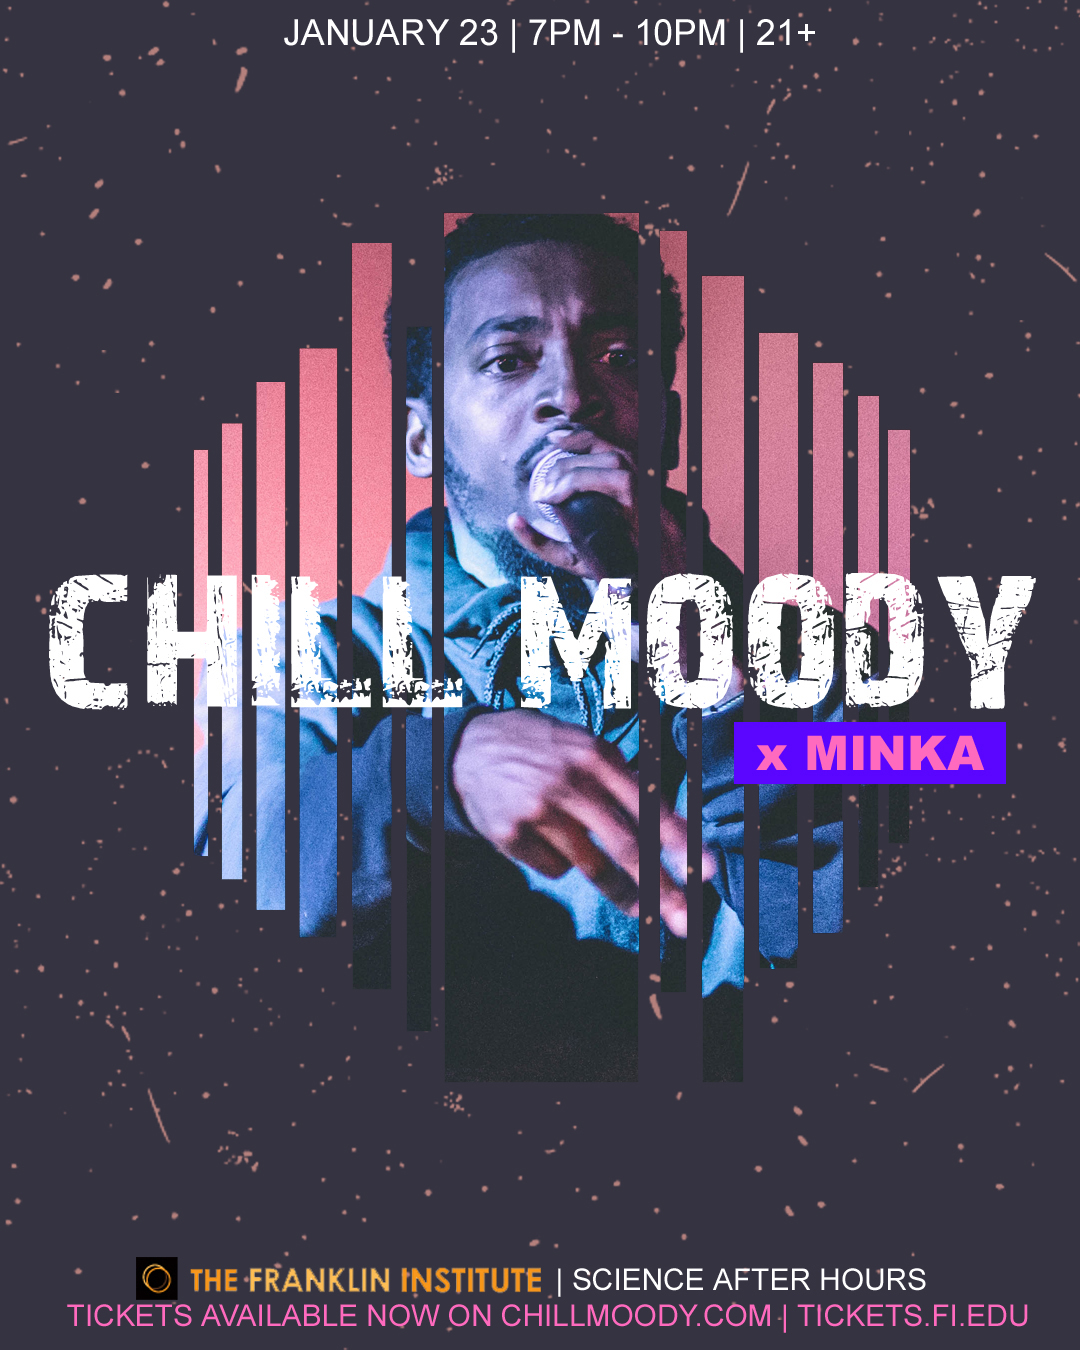 Tuesday January 23rd 7pmChill Moody x MinkaThe Franklin Institute | Science After Hours -